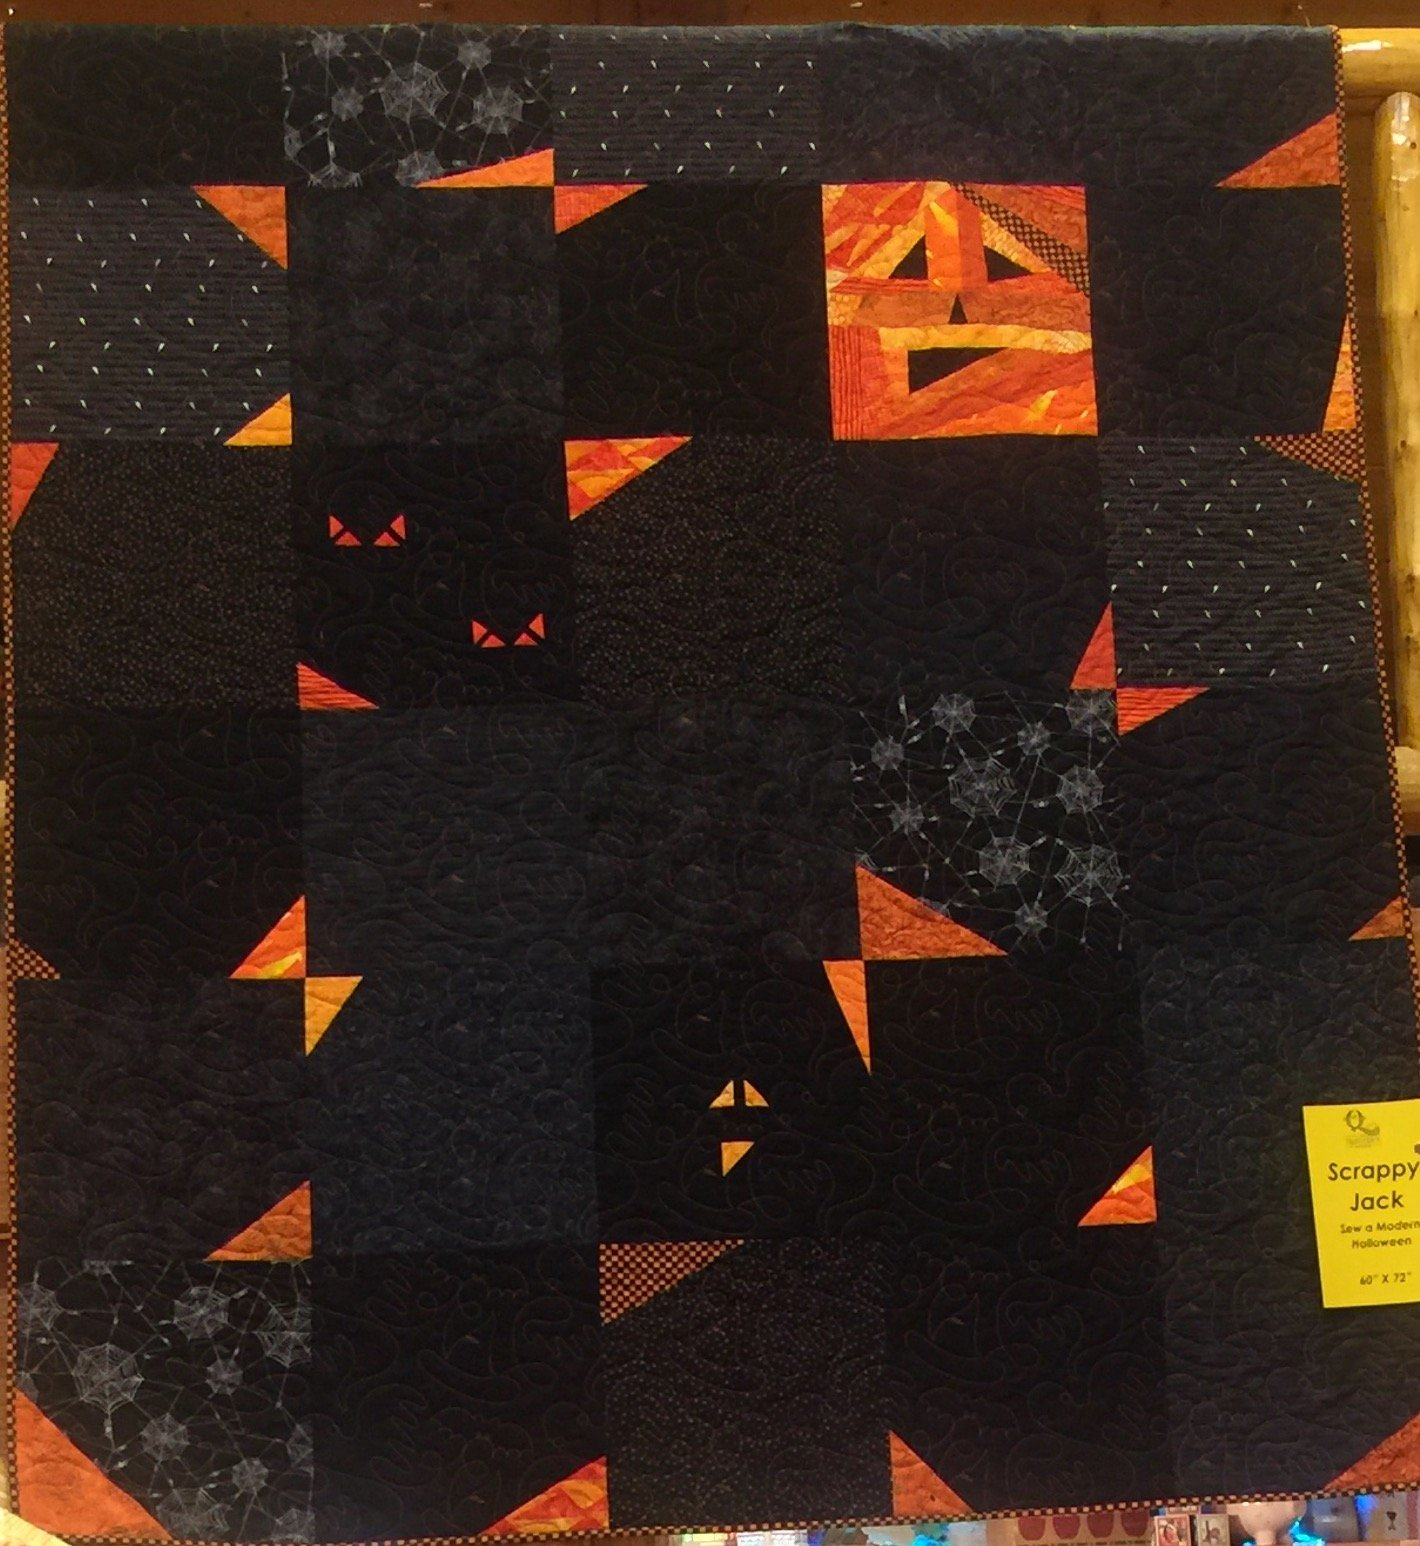 Scrappy Jack - Bits and Pieces Halloween Quilt Kit - 60 x 72